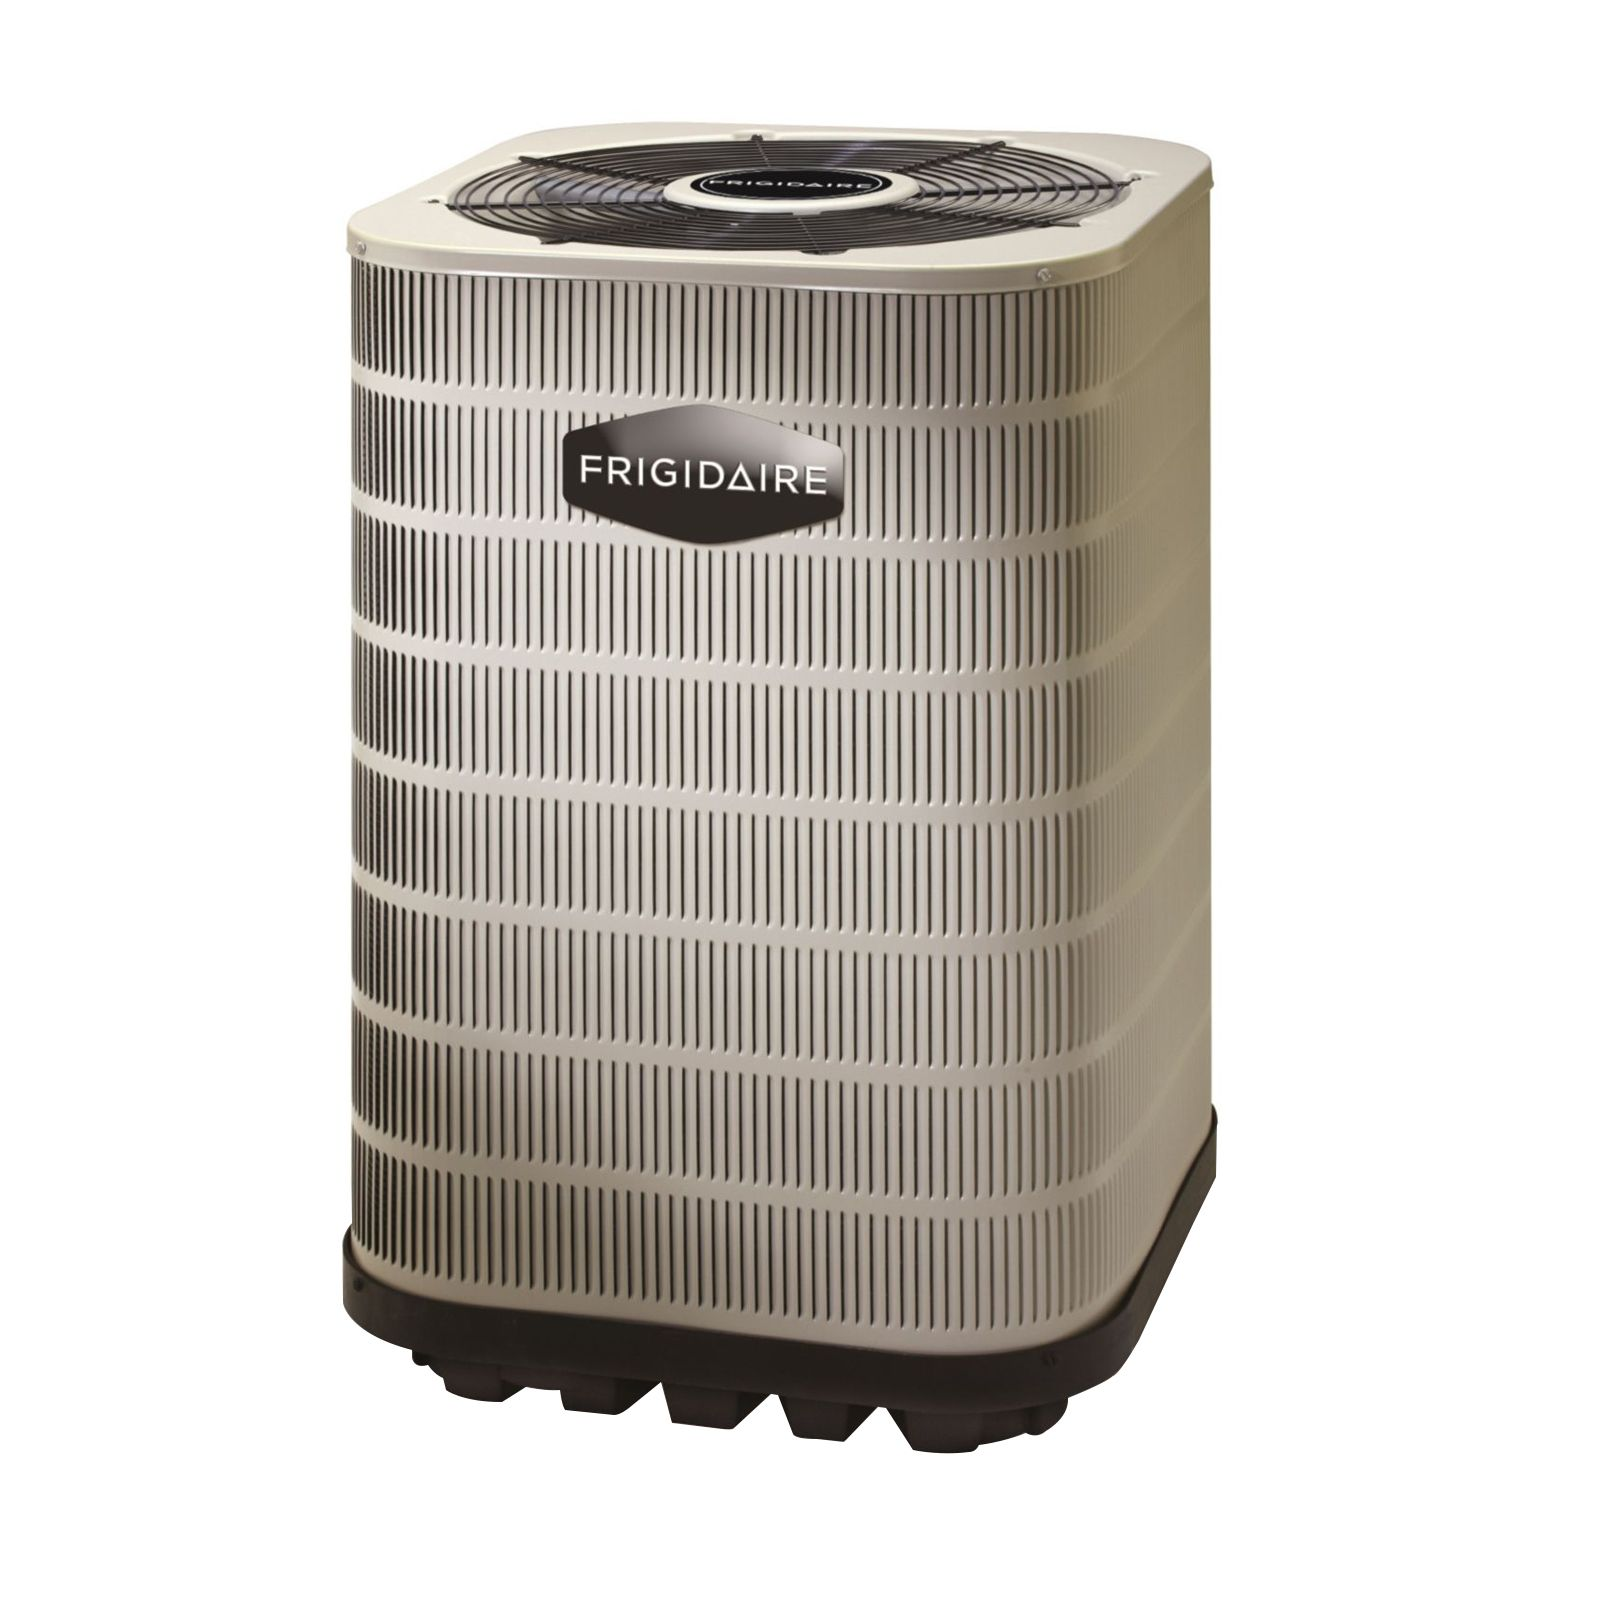 Frigidaire 921982E - ET4BE-024KA - 2 Ton 14 SEER High Efficiency Heat Pump, R410A